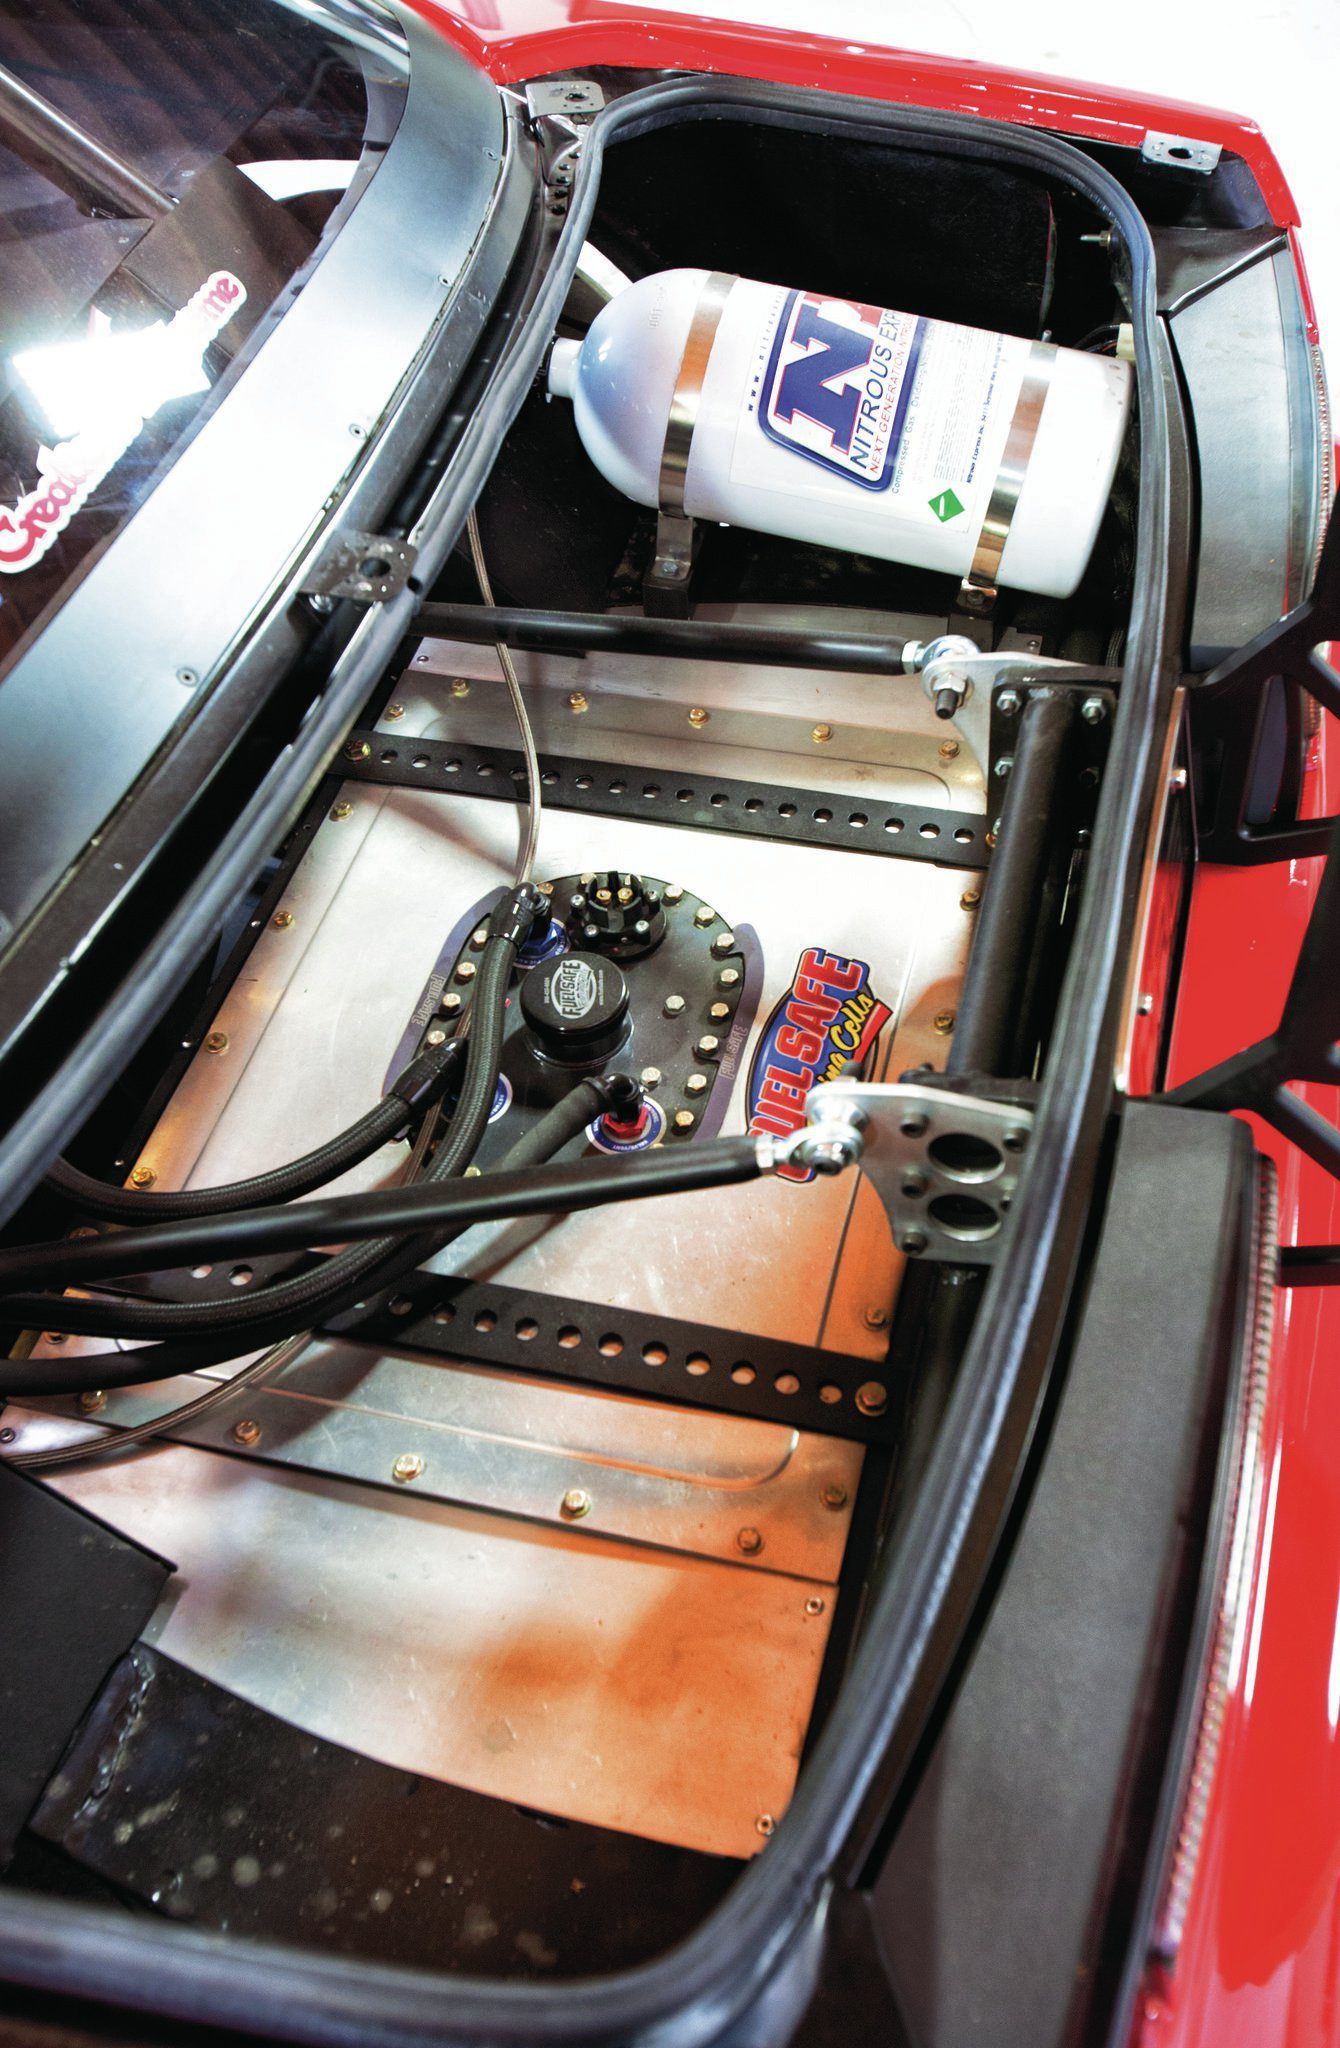 Under the decklid you'll find the Nitrous Express N-tercooler tank, Fuel Safe fuel cell, and wing mounting bracket.